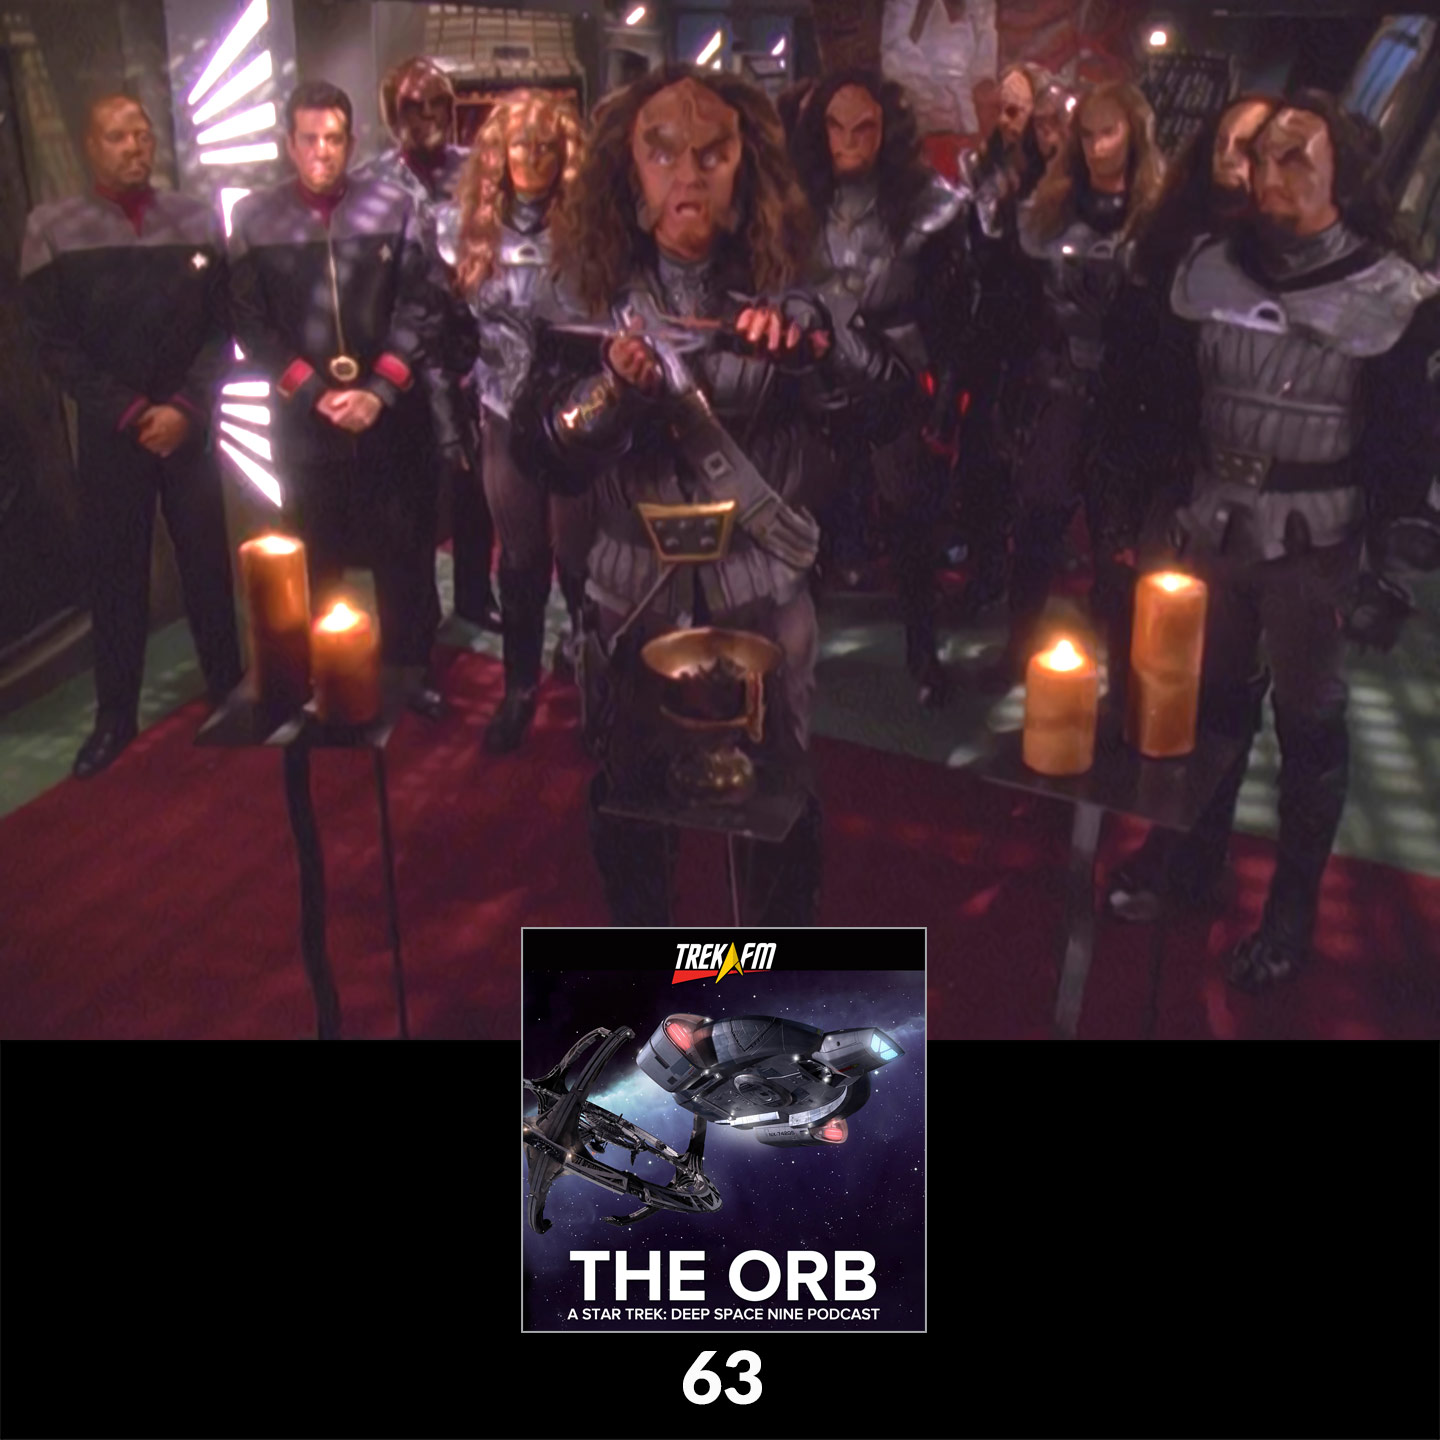 The Orb 63: Your Crazy Uncle Gowron